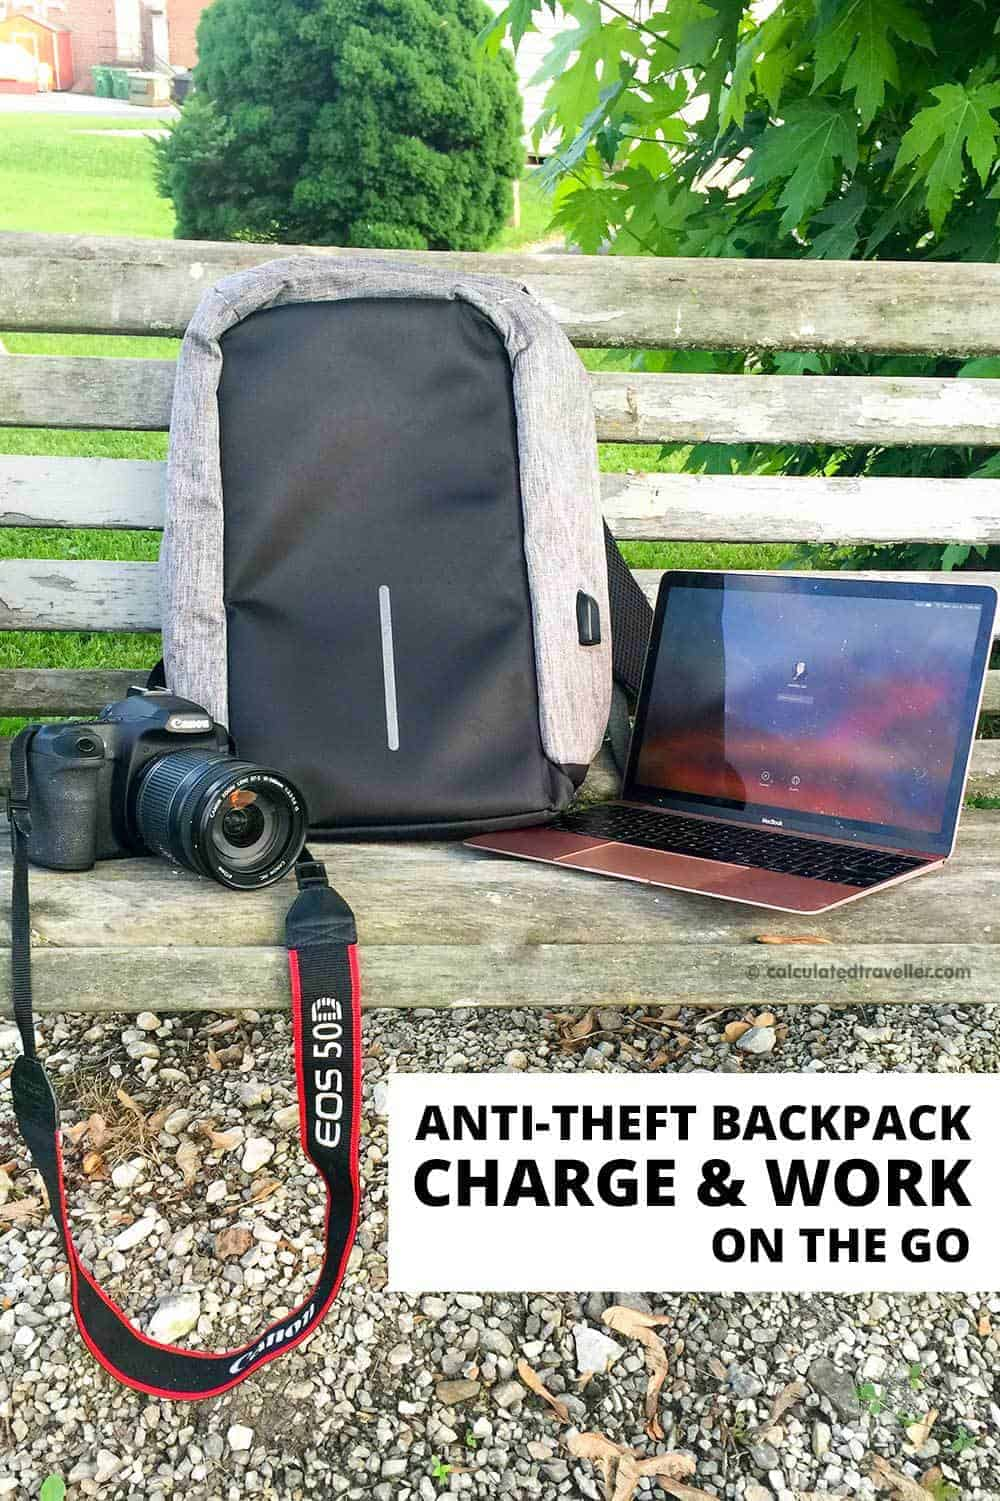 Super Secure Anti-Theft Backpack Review: Charge and Work on the Go #review #backpack #travel #work #USB #charger